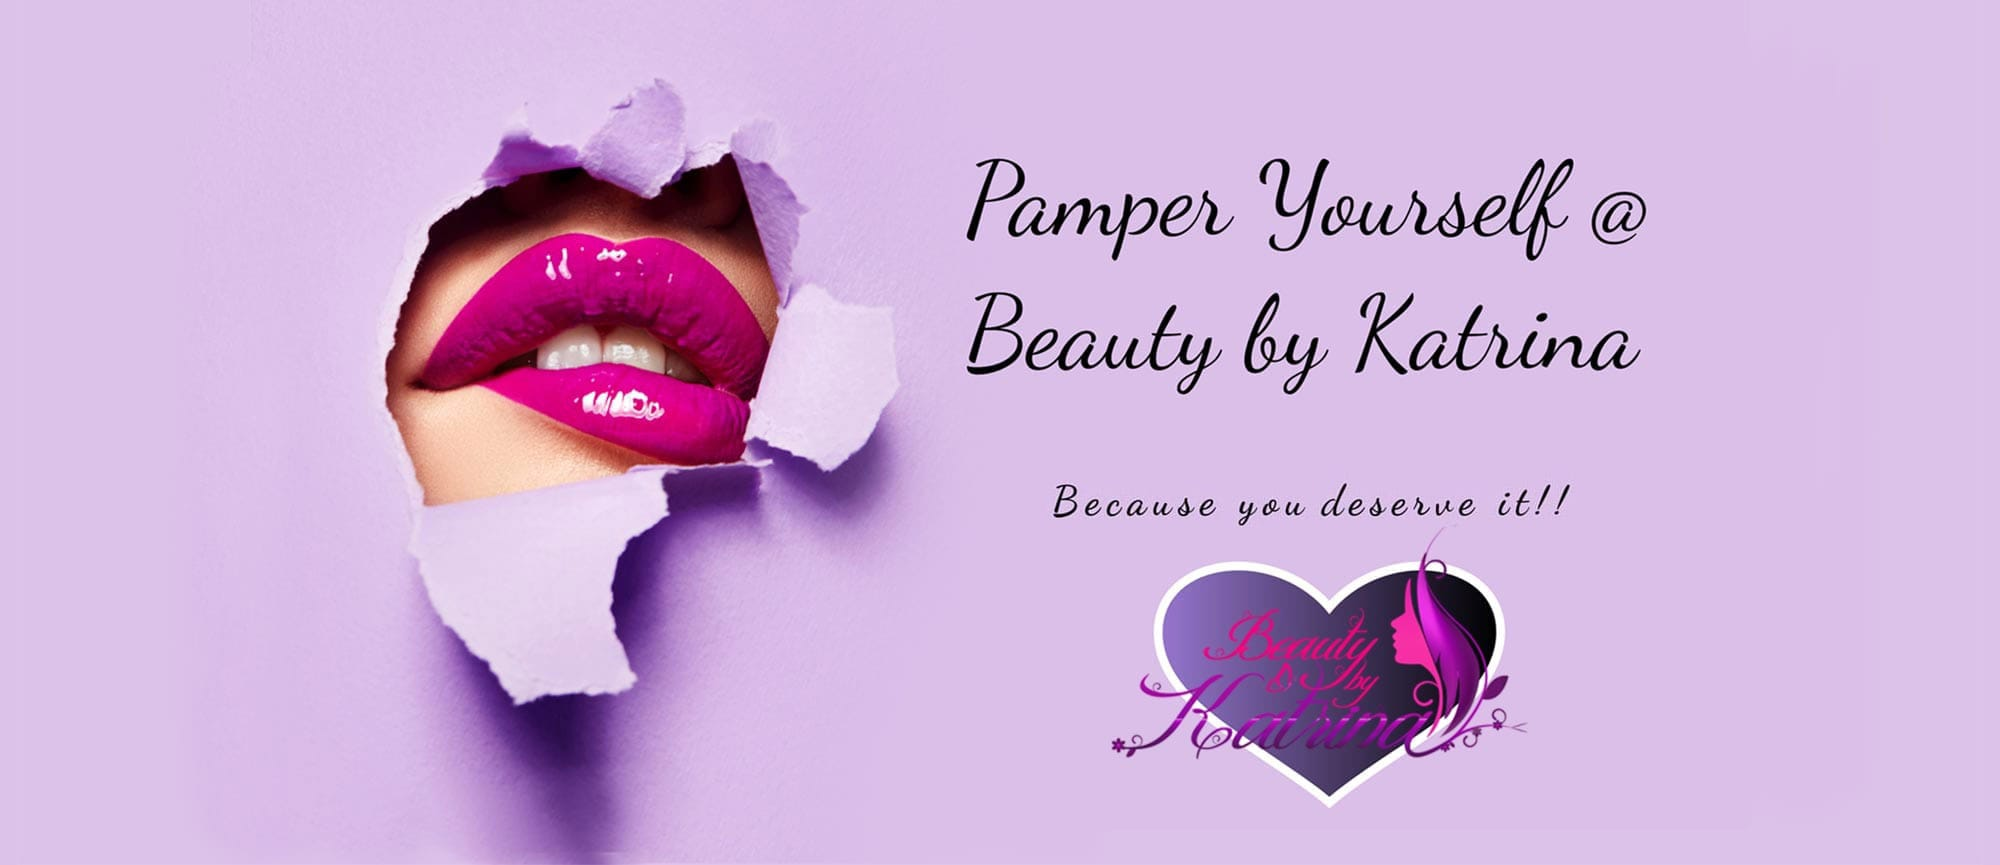 Pamper yourself at Beauty by Katrina